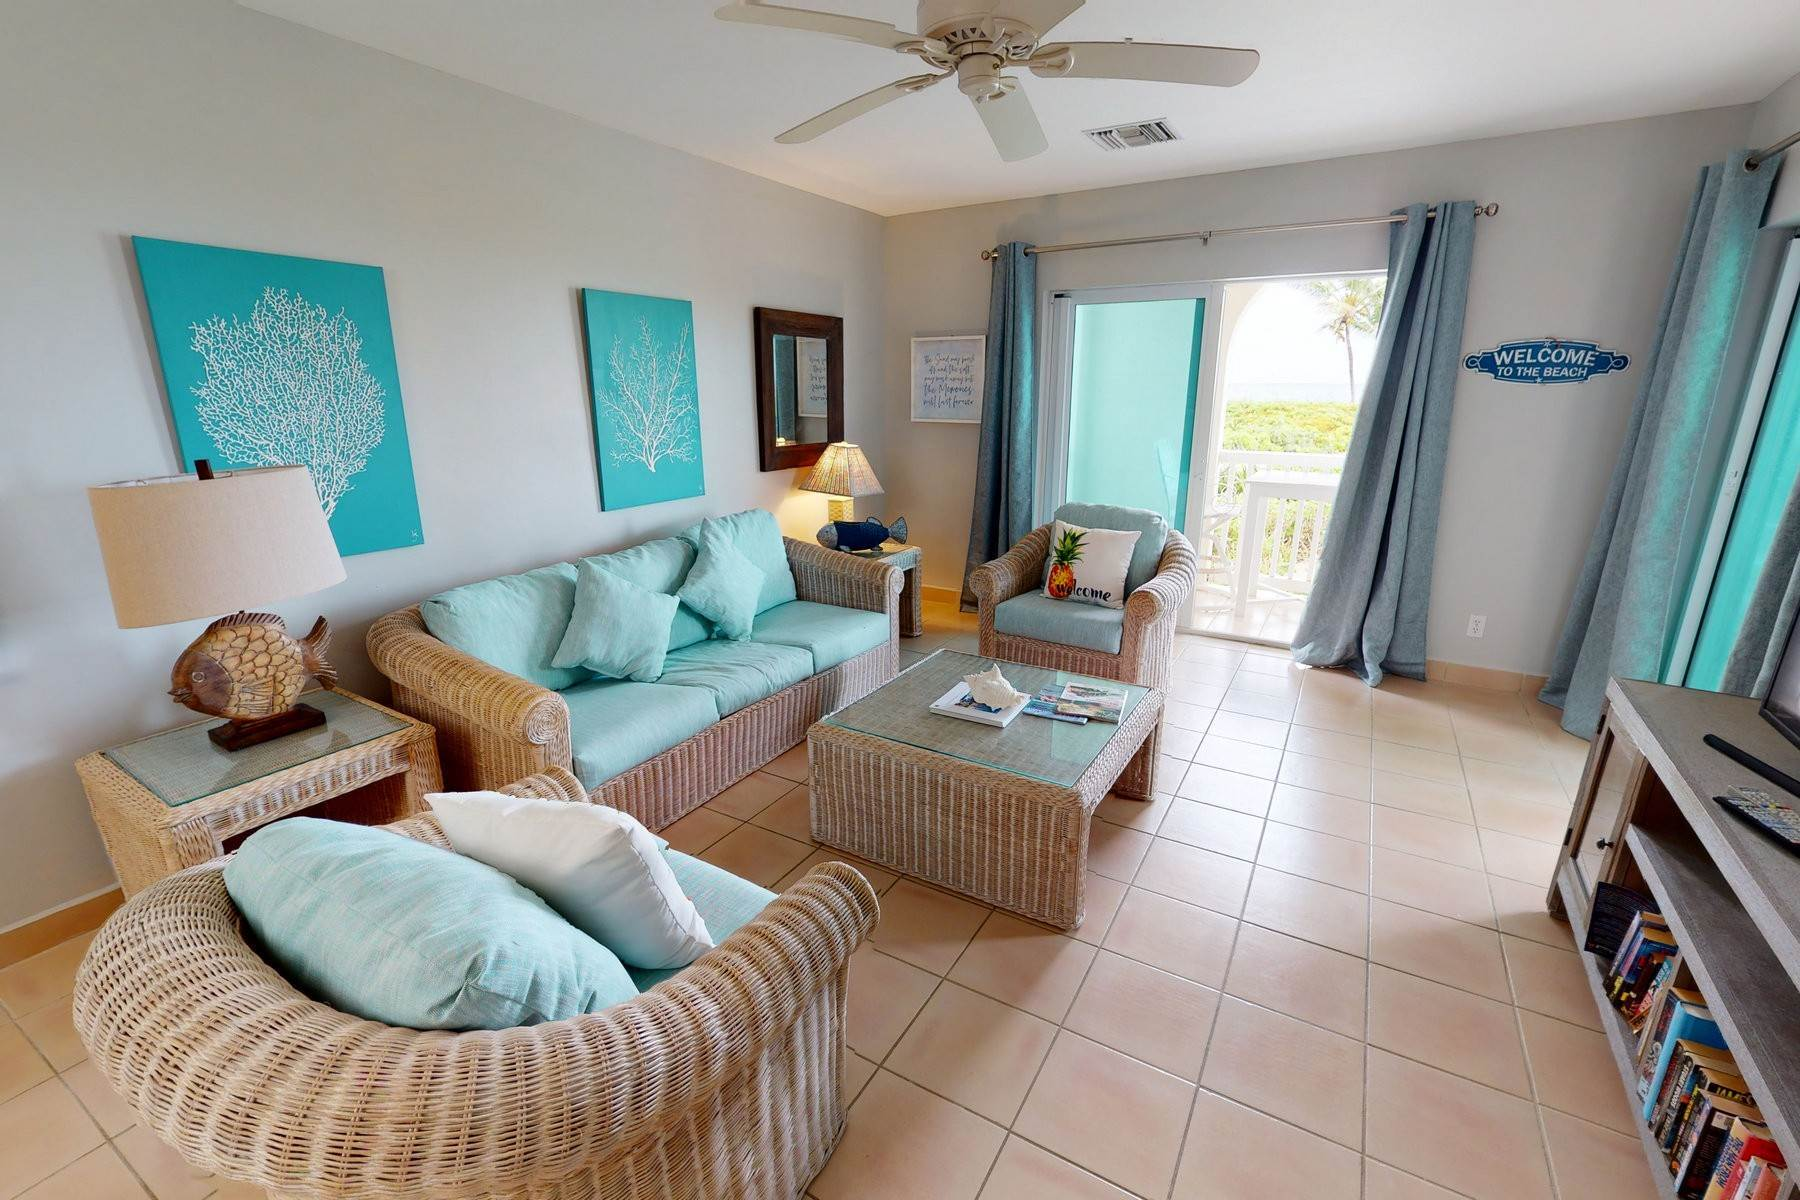 Condominiums for Sale at Northwest Point Resort B1-107 Beachfront North West Point, Providenciales TKCA 1ZZ Turks And Caicos Islands